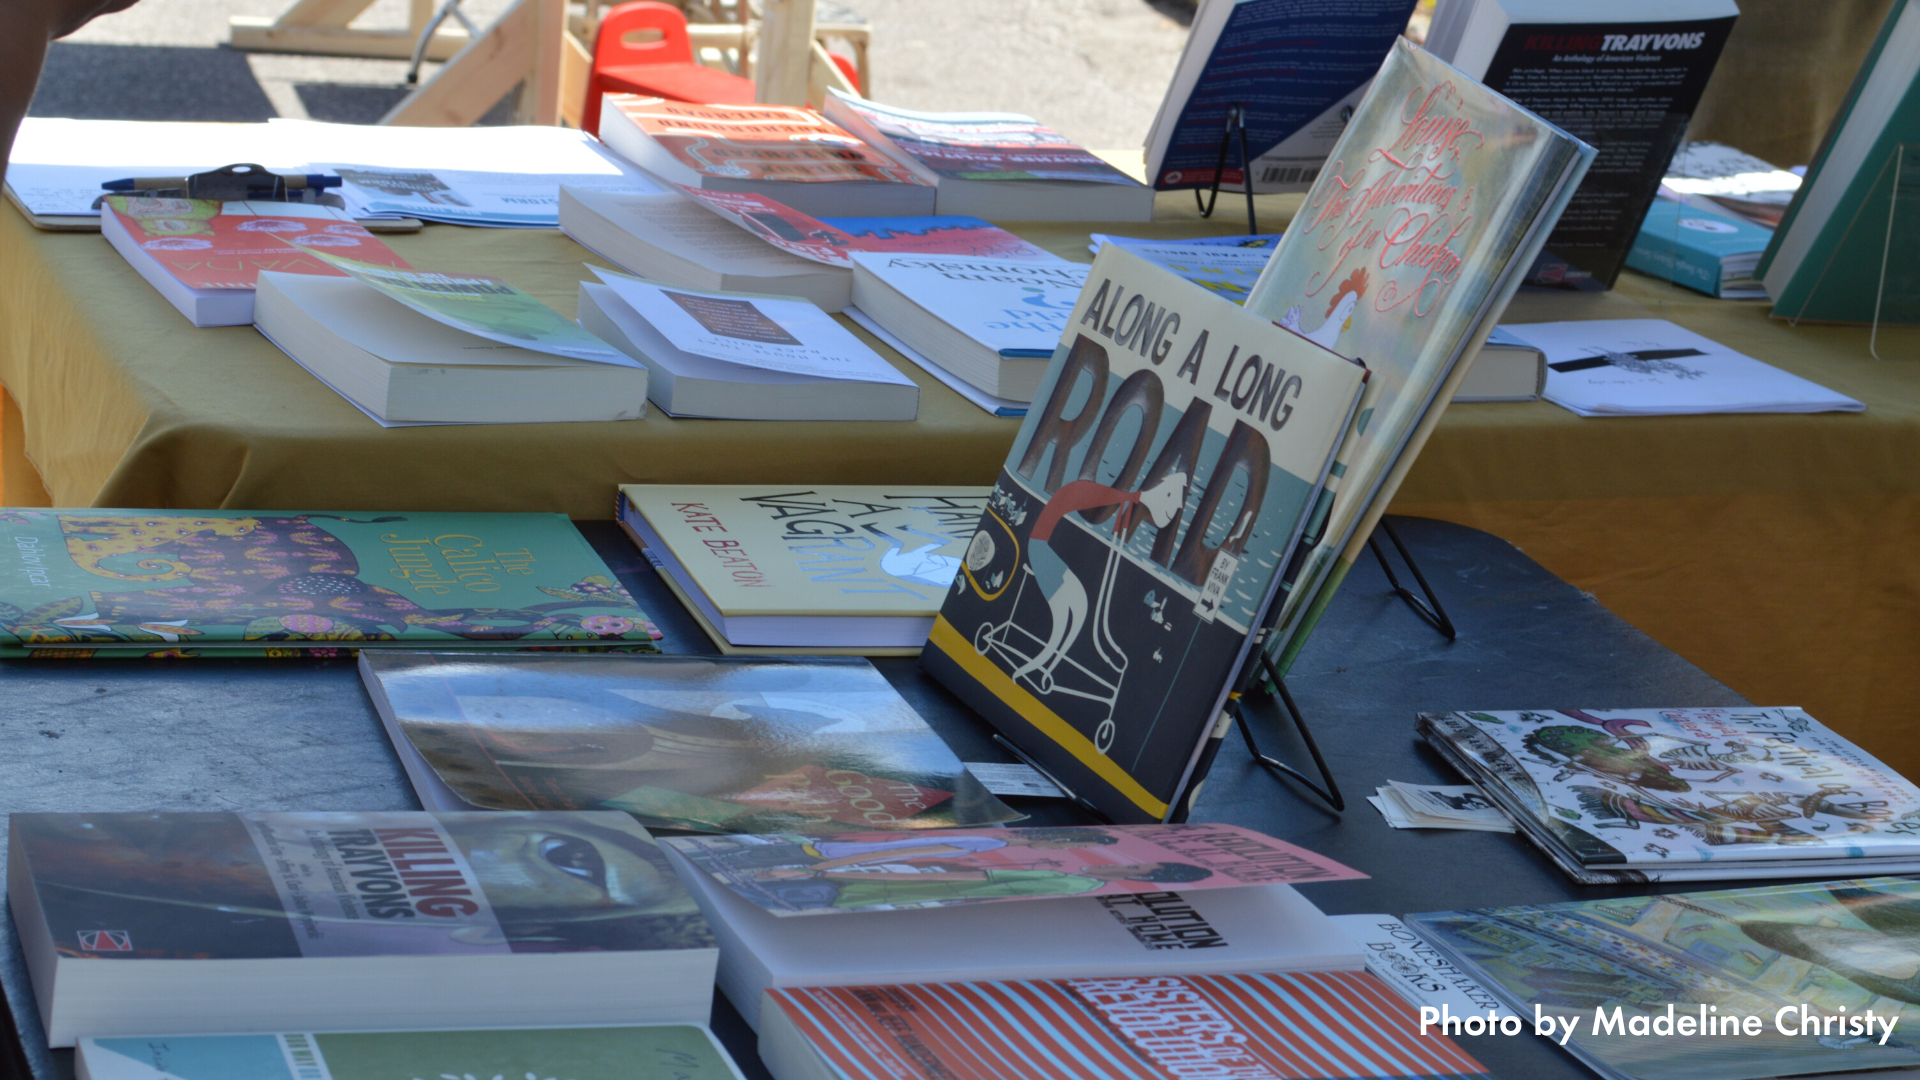 Books displayed on a table at Open Streets Franklin